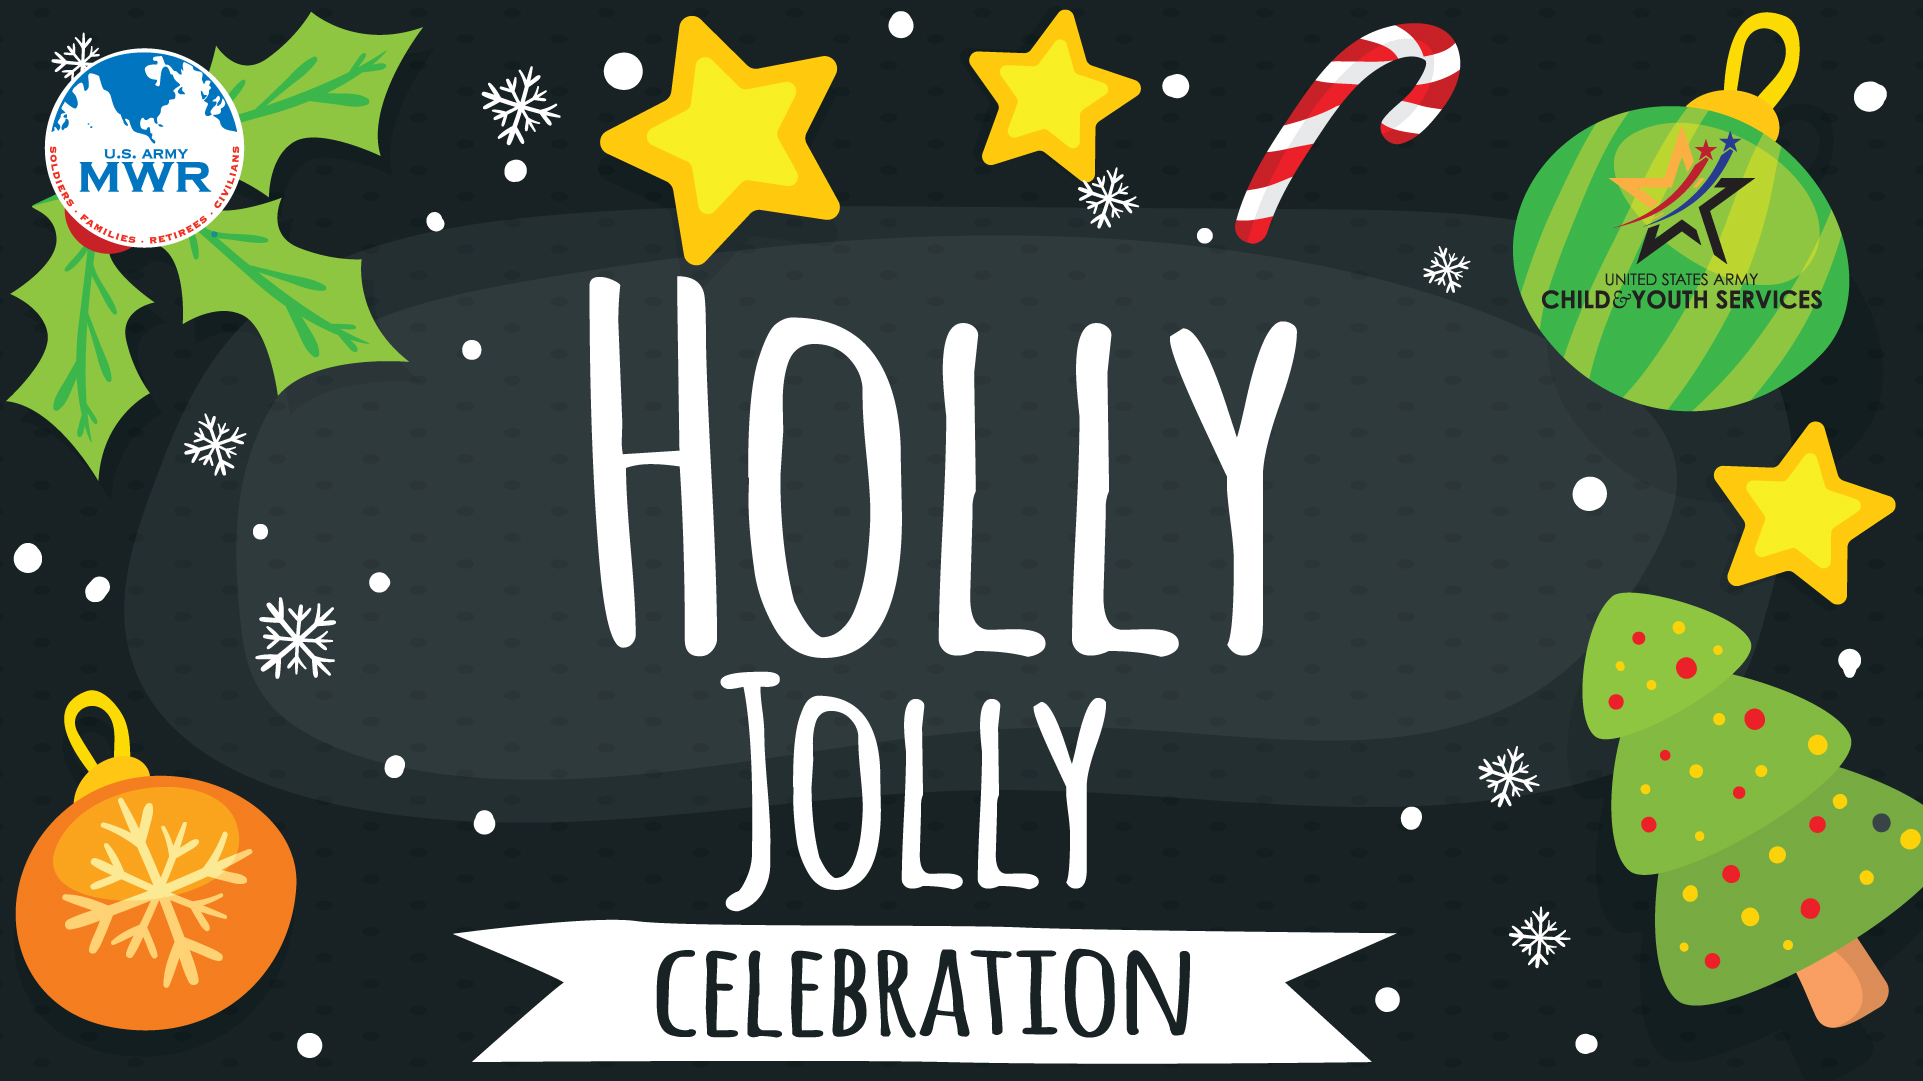 CYS Holly Jolly Celebration